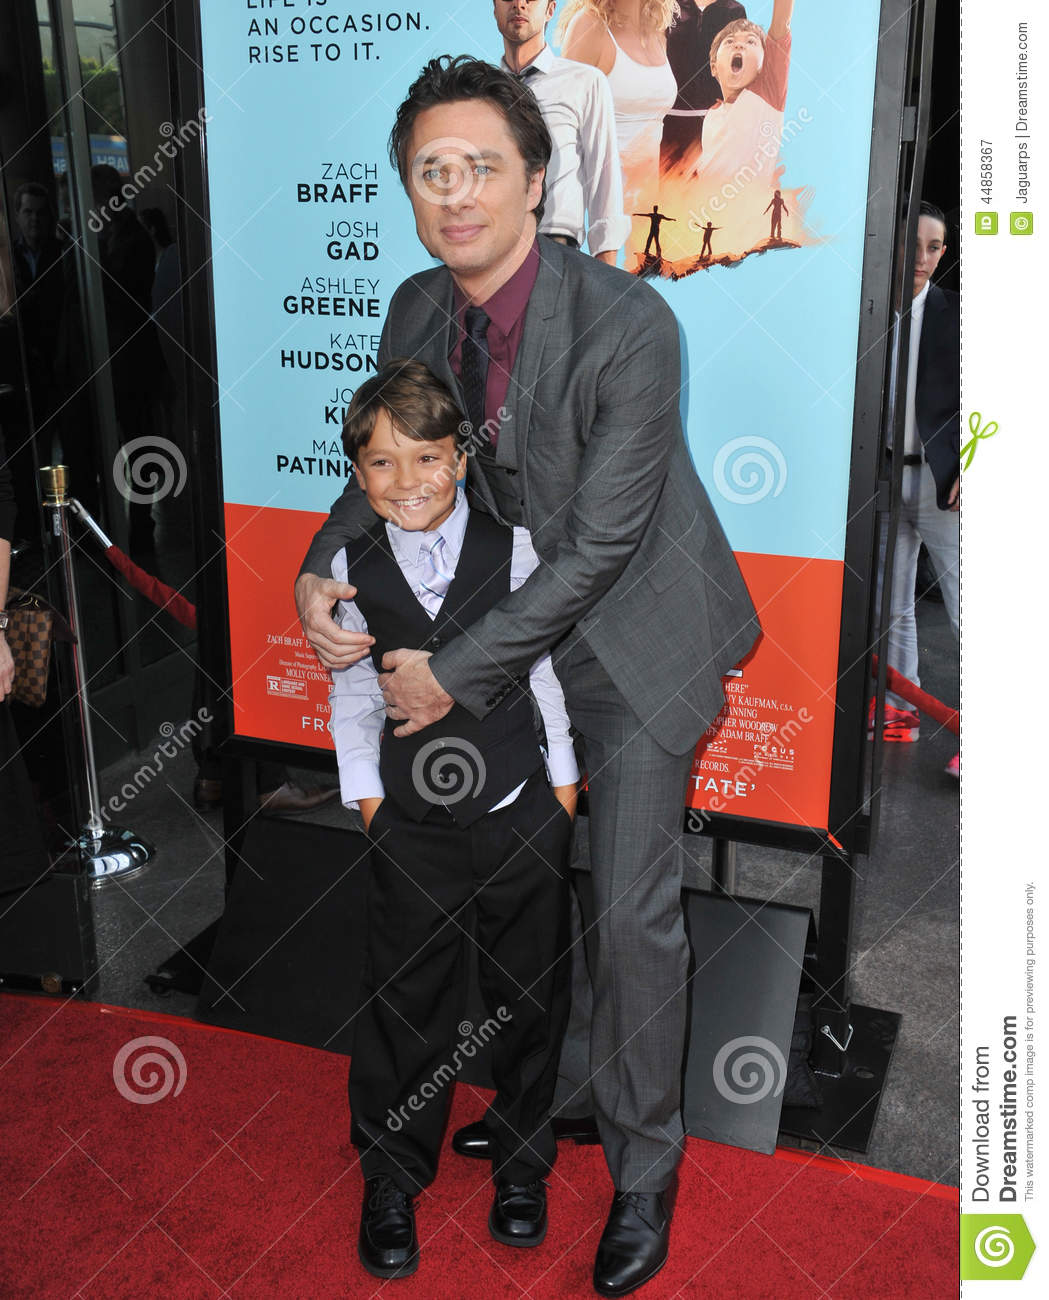 Zach Braff y Pierce Gagnon